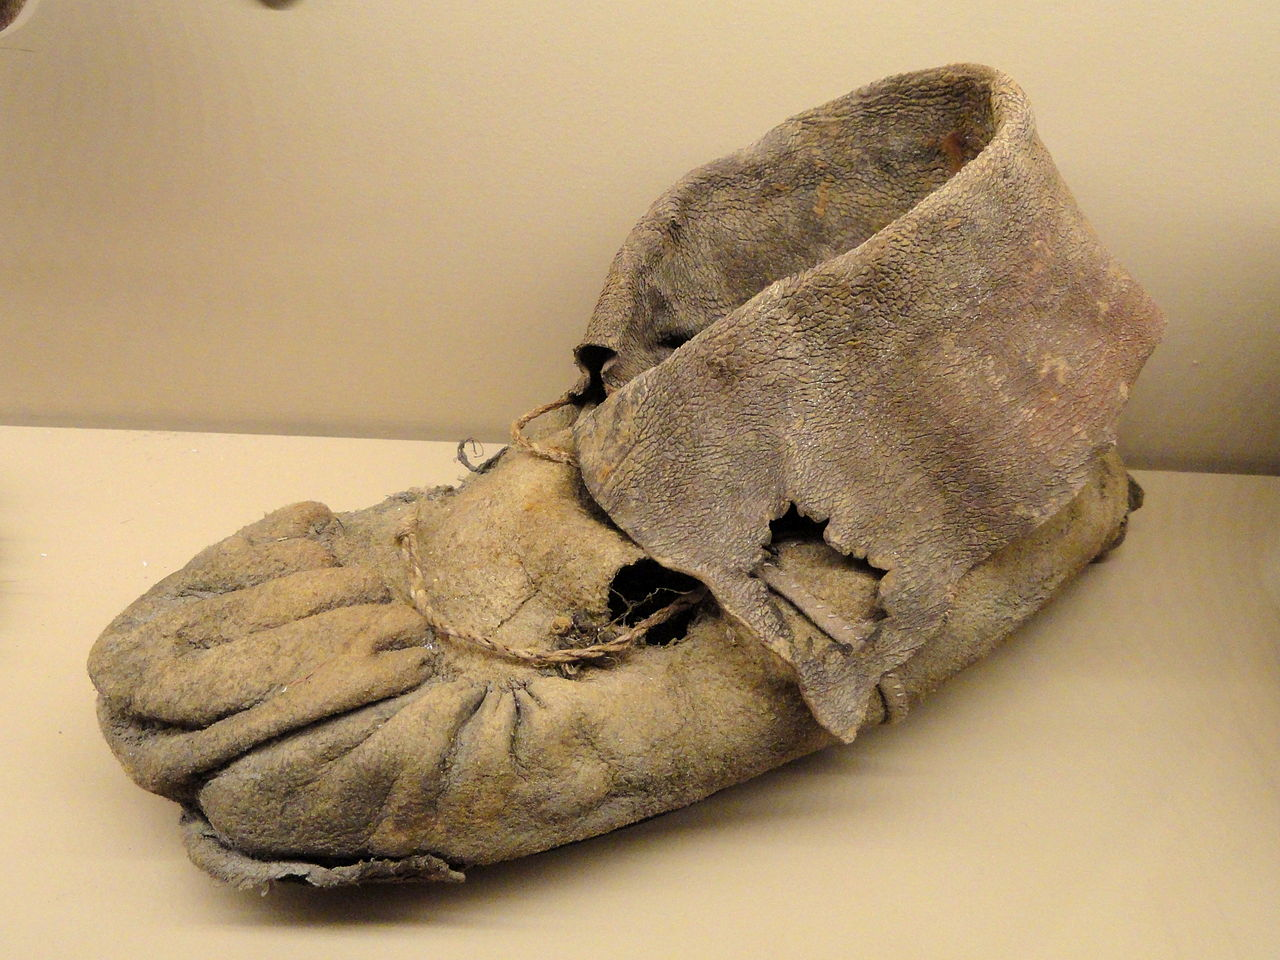 Moccasin,_1225_-_1275_AD,_Promontory_Cave_I,_Utah,_bison_hide_with_hair_turned_inside_-_Natural_History_Museum_of_Utah_-_DSC07295